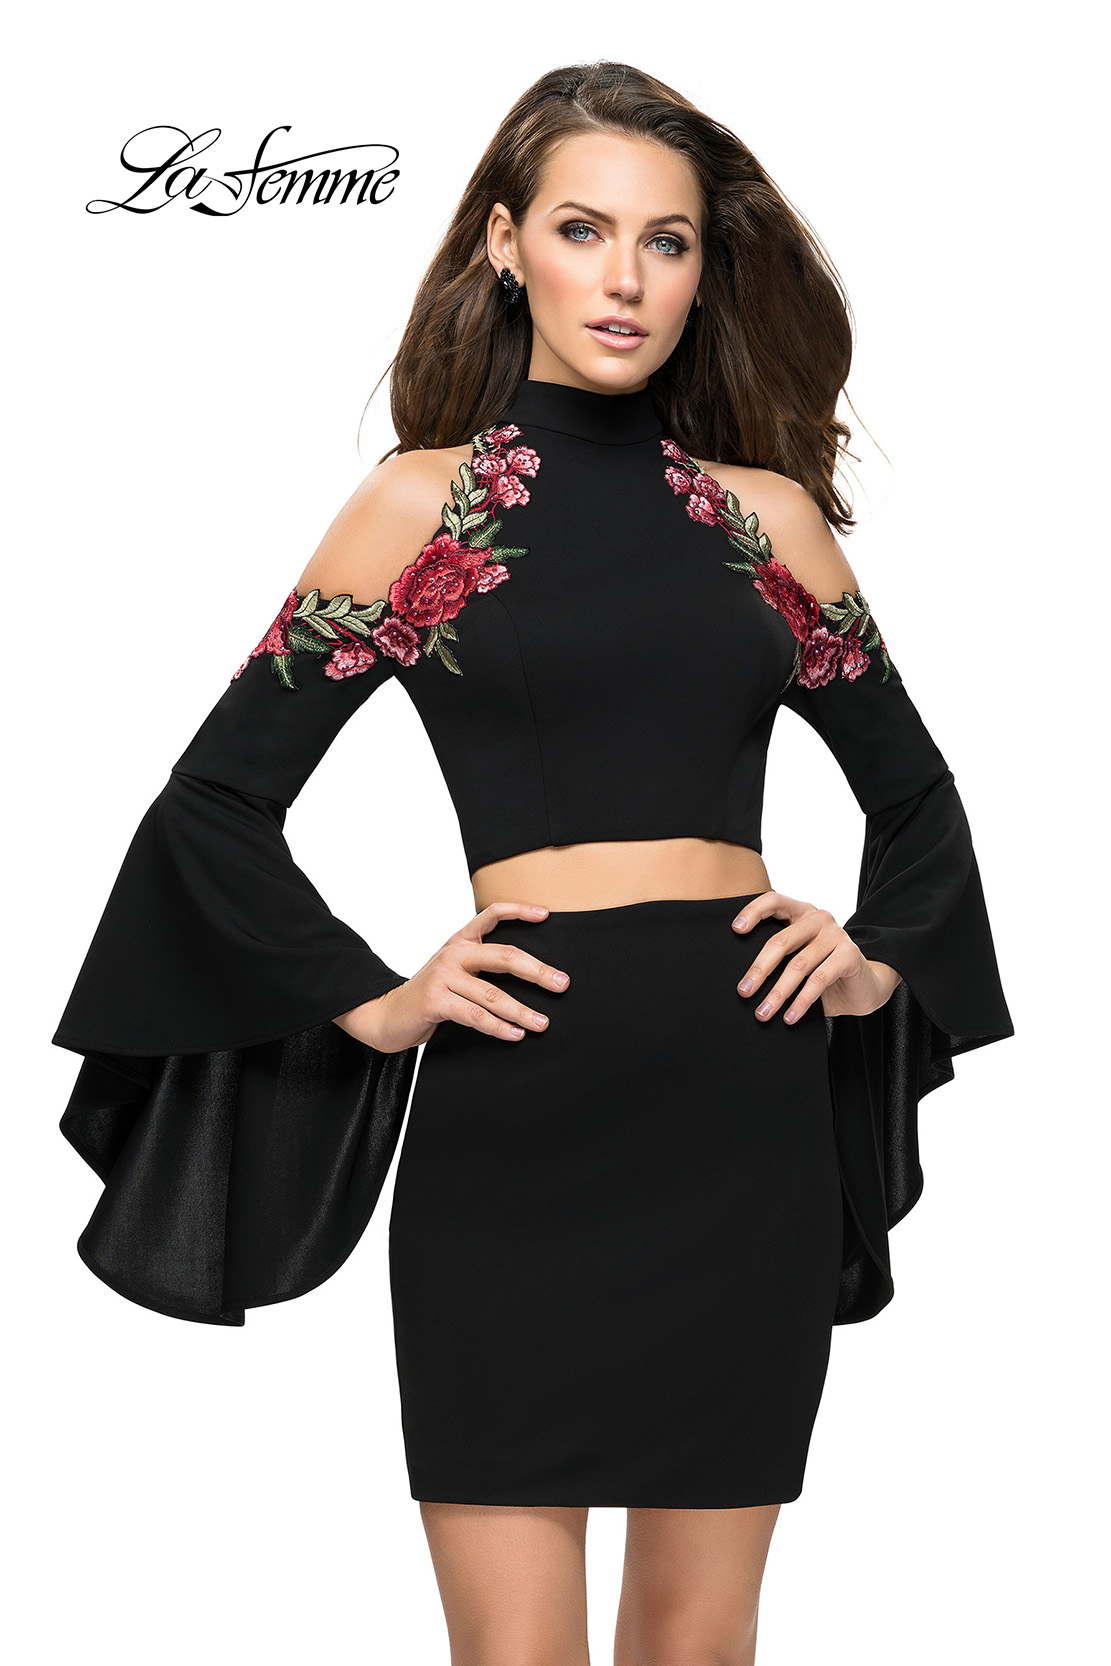 Two Piece Black Homecoming Dress with Floral Embroidery